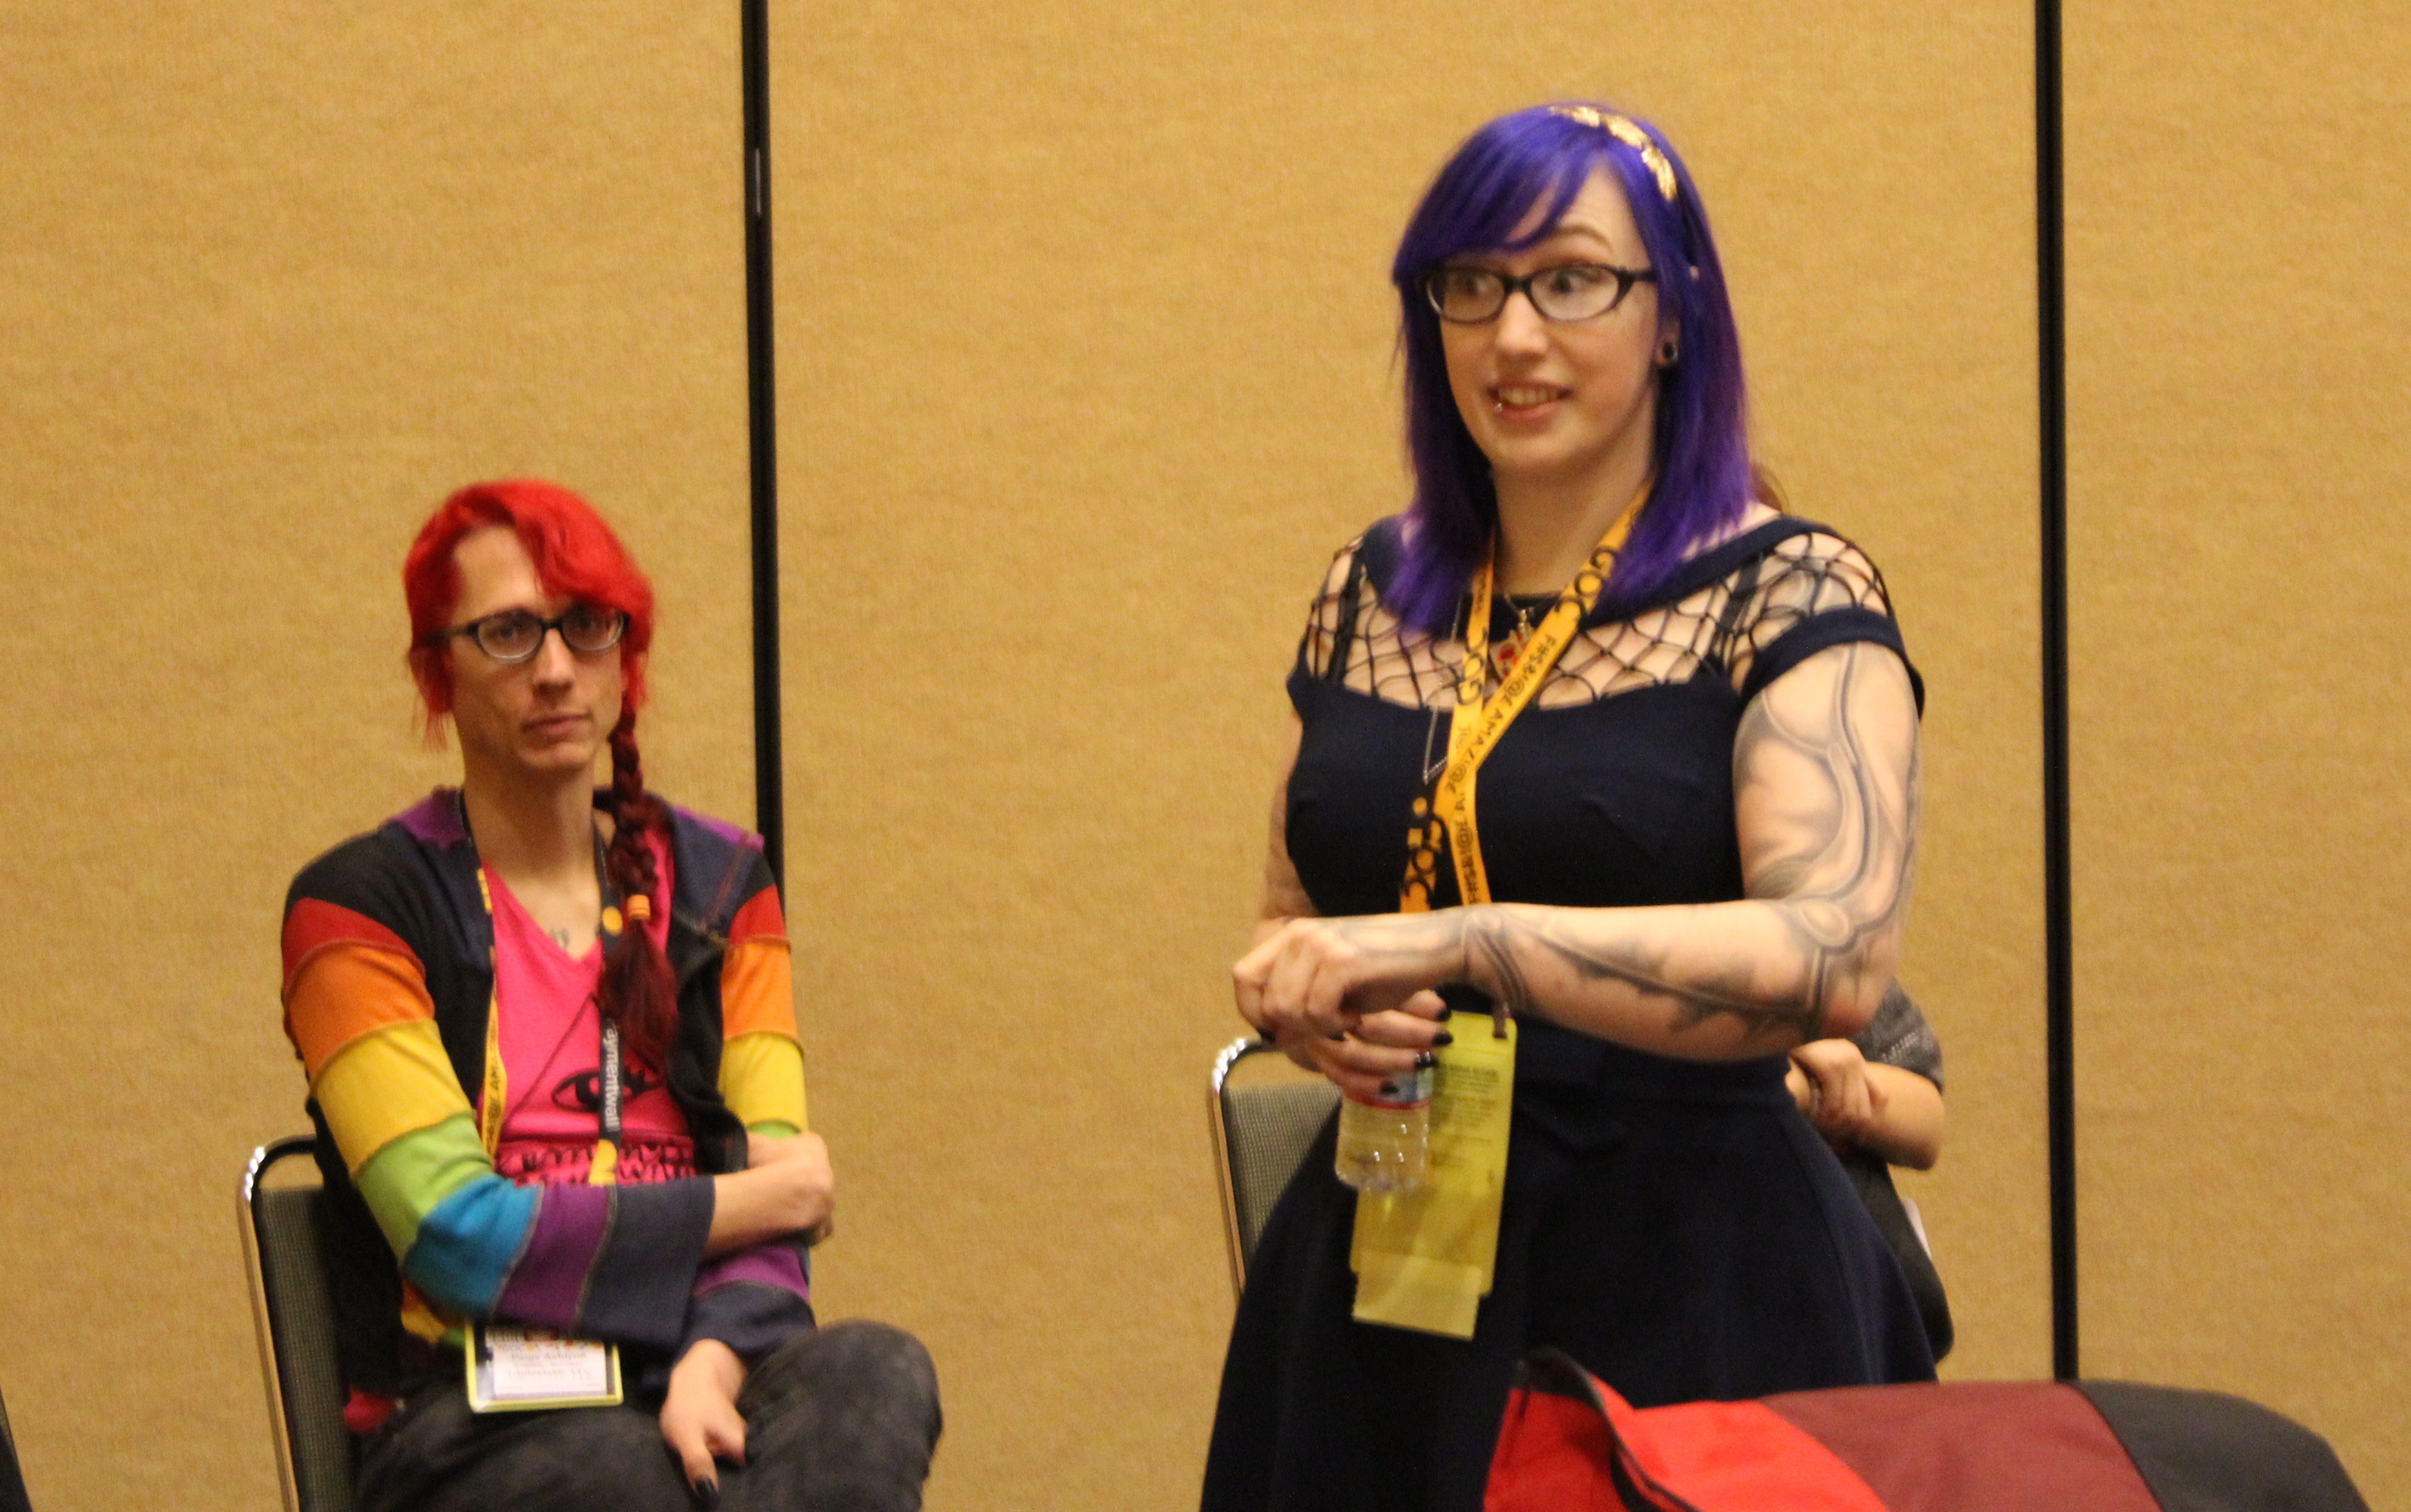 Zoe Quinn speaking at a roundtable panel during the Game Developers Conference 2015.